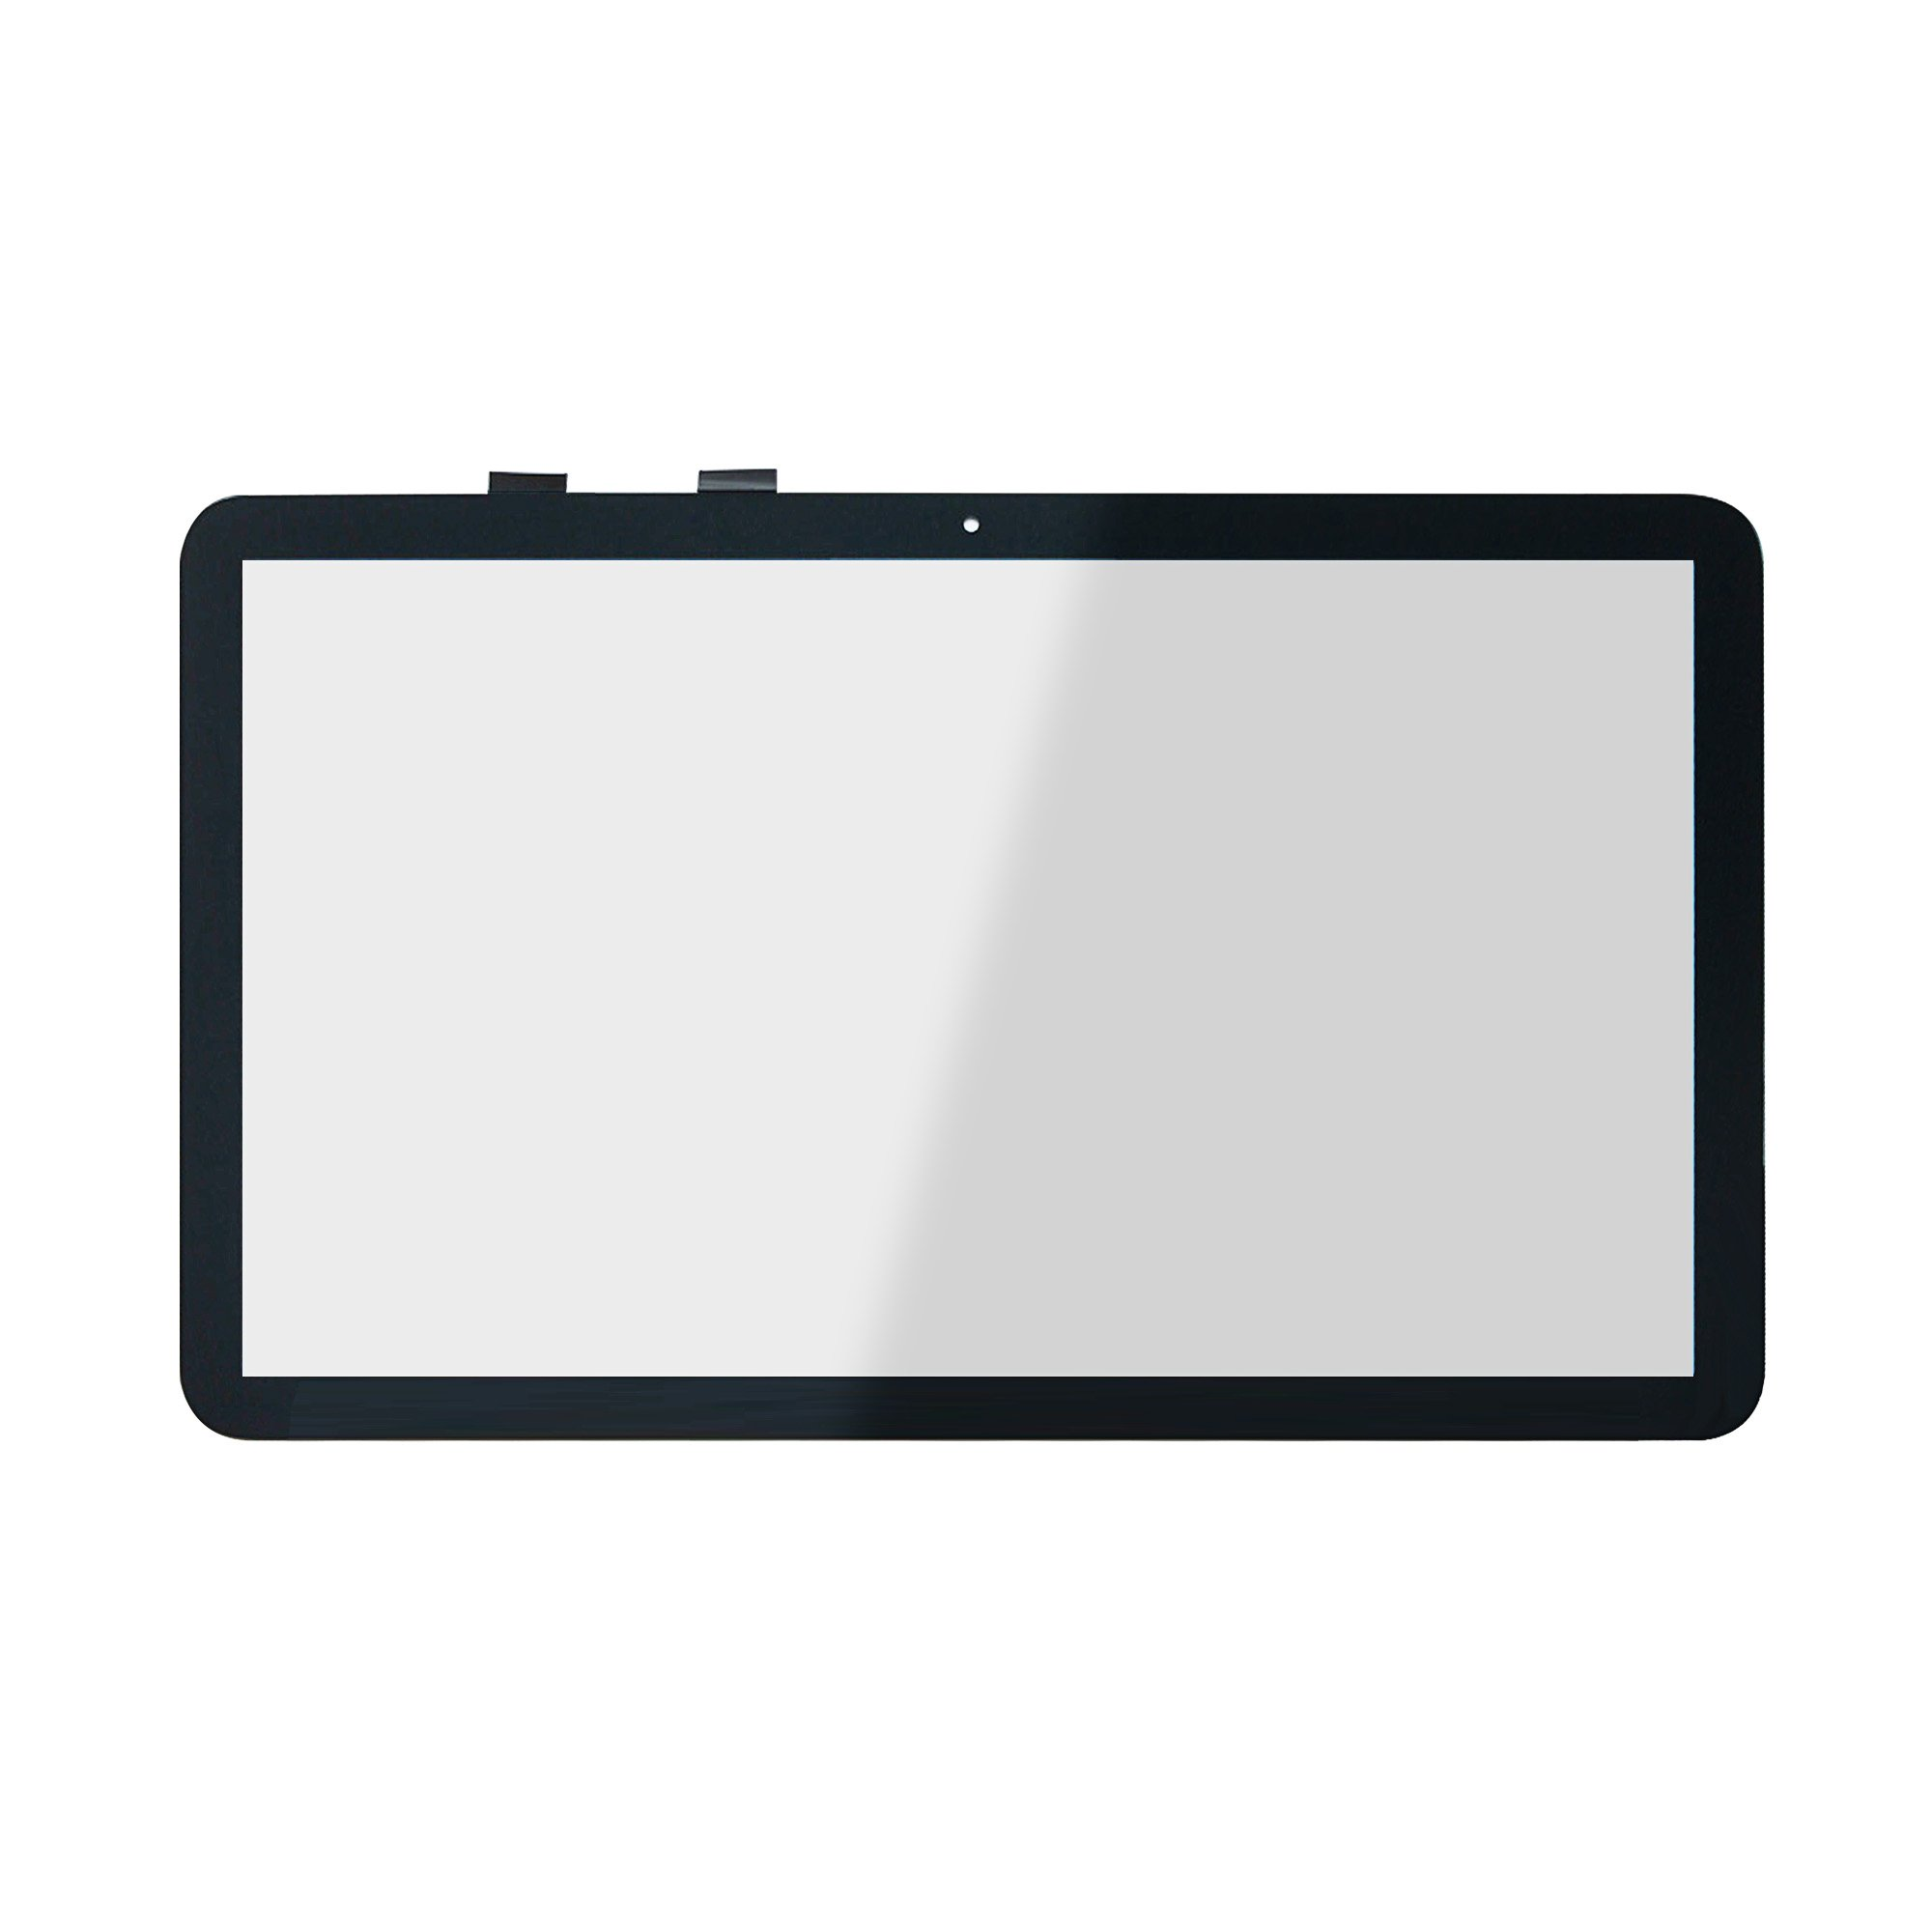 LCDOLED 15.6'' Replacement Touch Screen Digitizer Glass for HP Pavilion 15-ab121dx 15-ab071nr 15-ab143cl 15-ab153nr 15-ab292nr 15-ab262nr 15-ab283nr 15-ab259nr 15-ab267cl etc. (No Bezel)